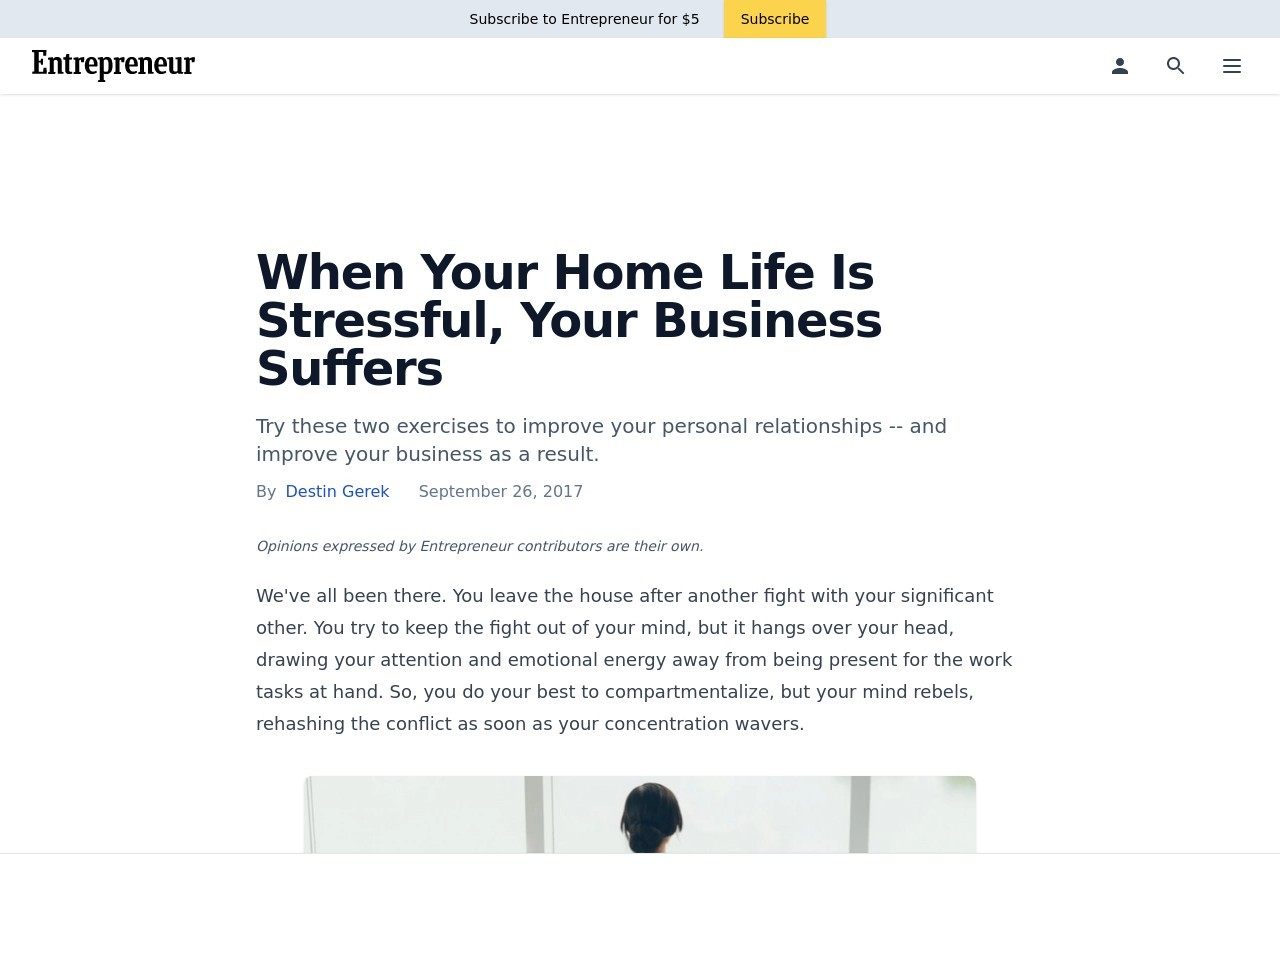 When Your Home Life Is Stressful, Your Business Suffers